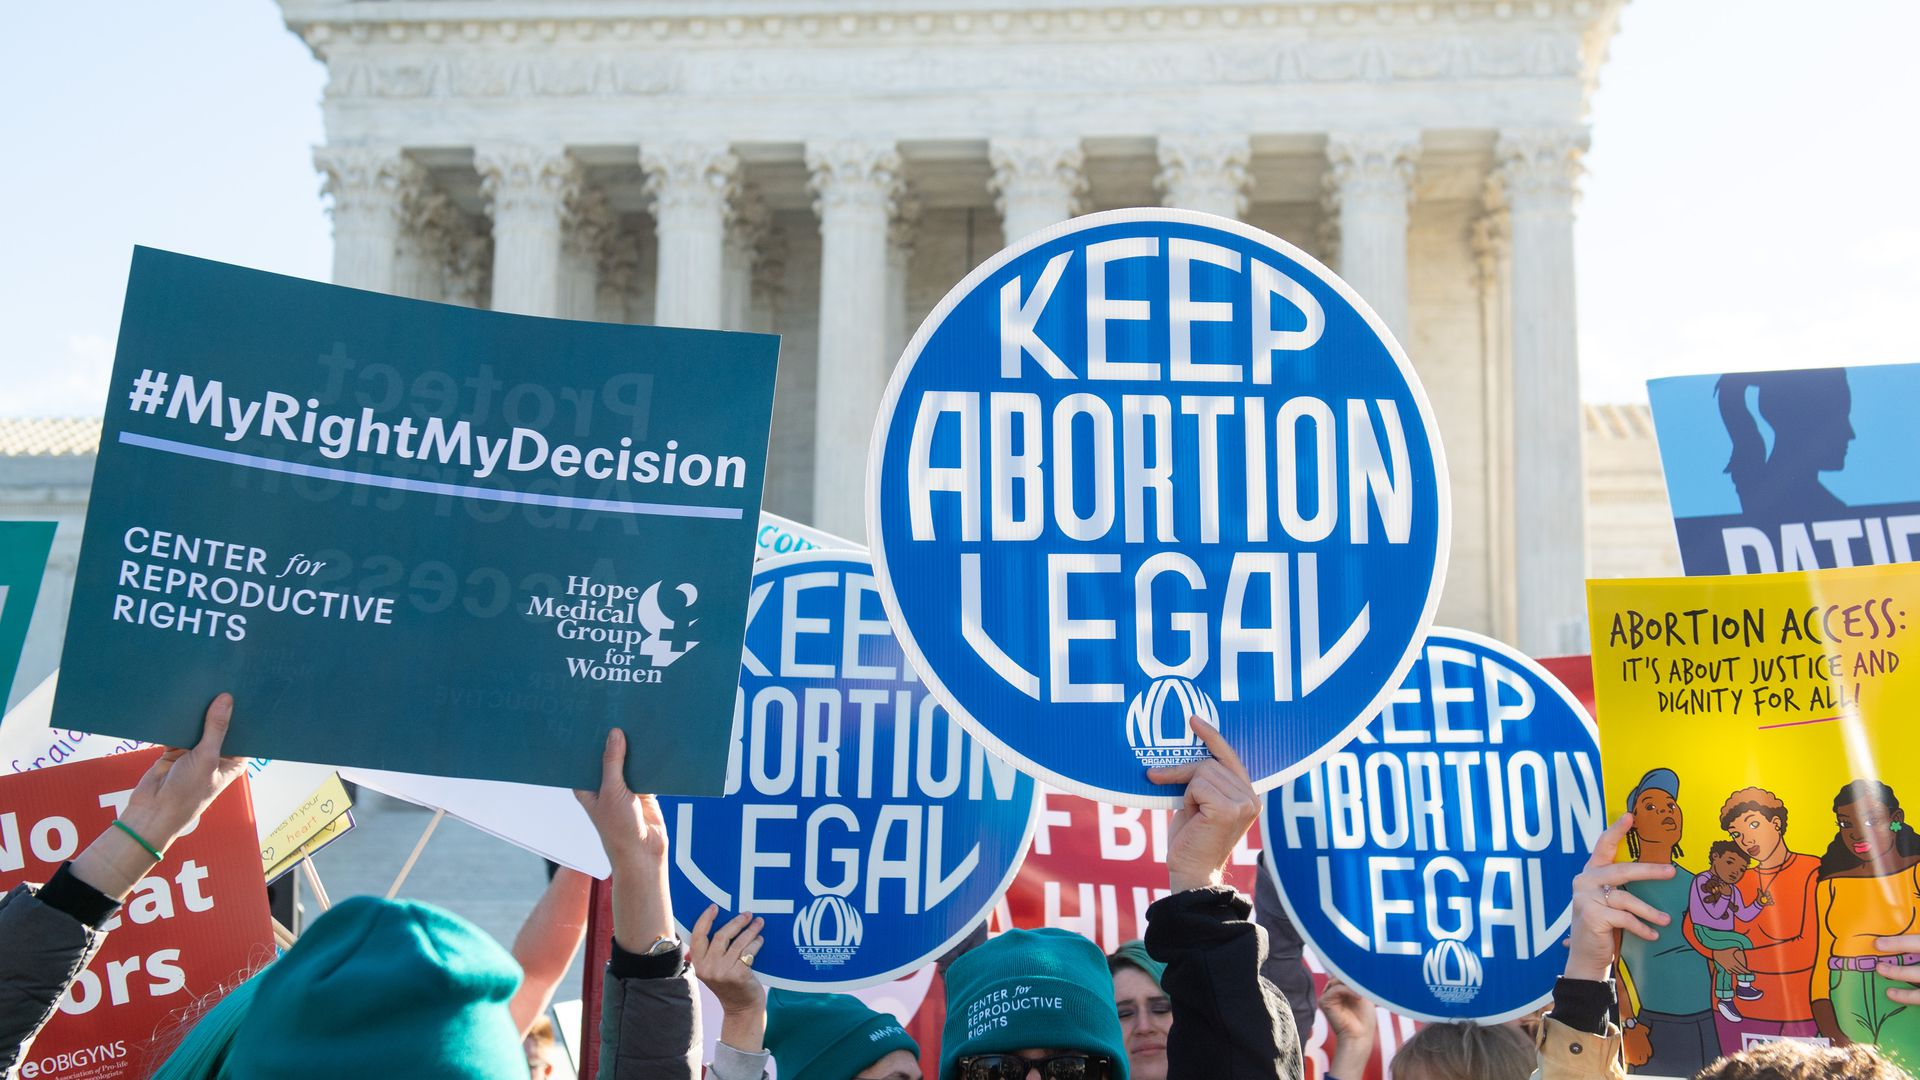 Texas abortion law: Details and what comes next - Axios